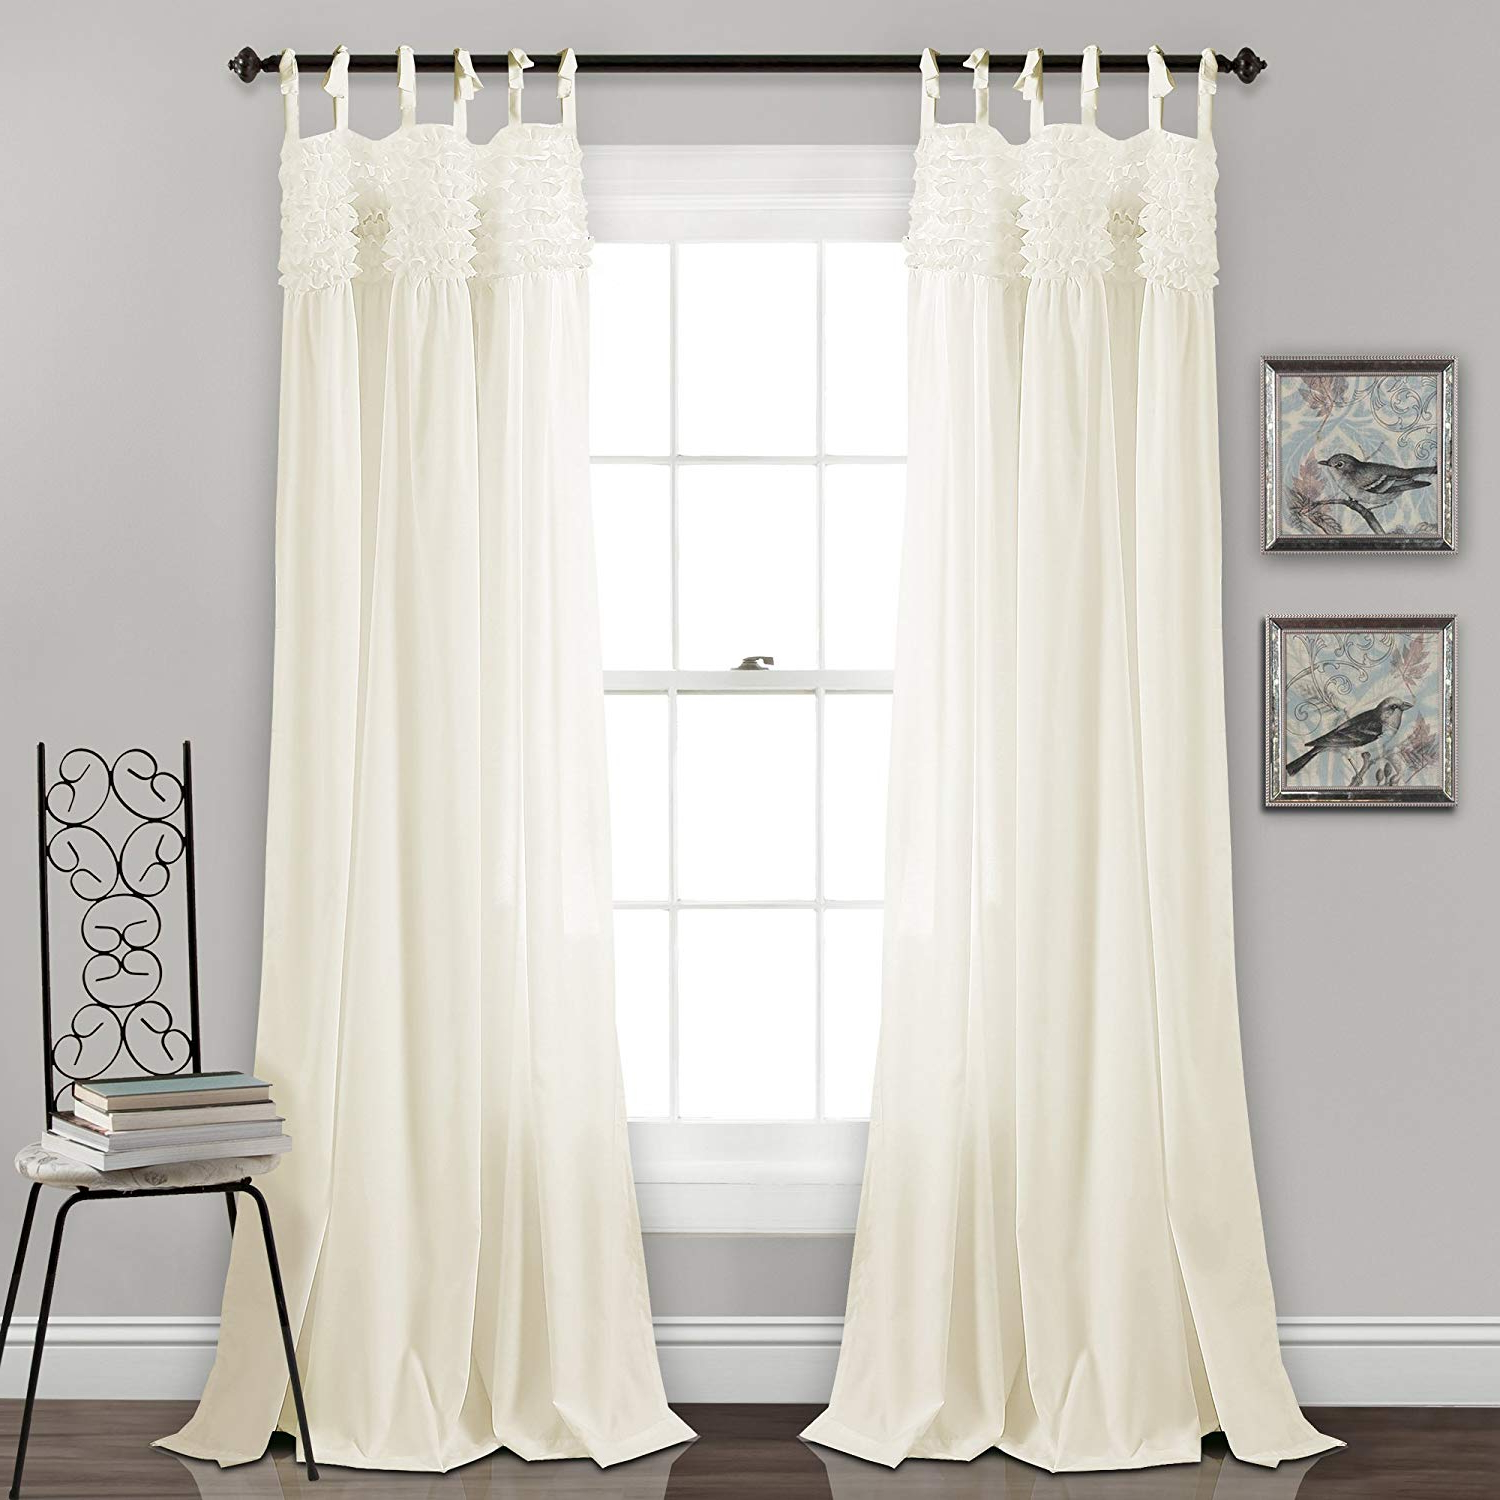 "Ruffle Diamond Curtain Panel Pairs Pertaining To Well Known Lush Decor Lydia Curtains Ruffle Window Panel Set For Living, Dining,  Bedroom (Pair), 84"" X 40"", Ivory (Gallery 17 of 20)"